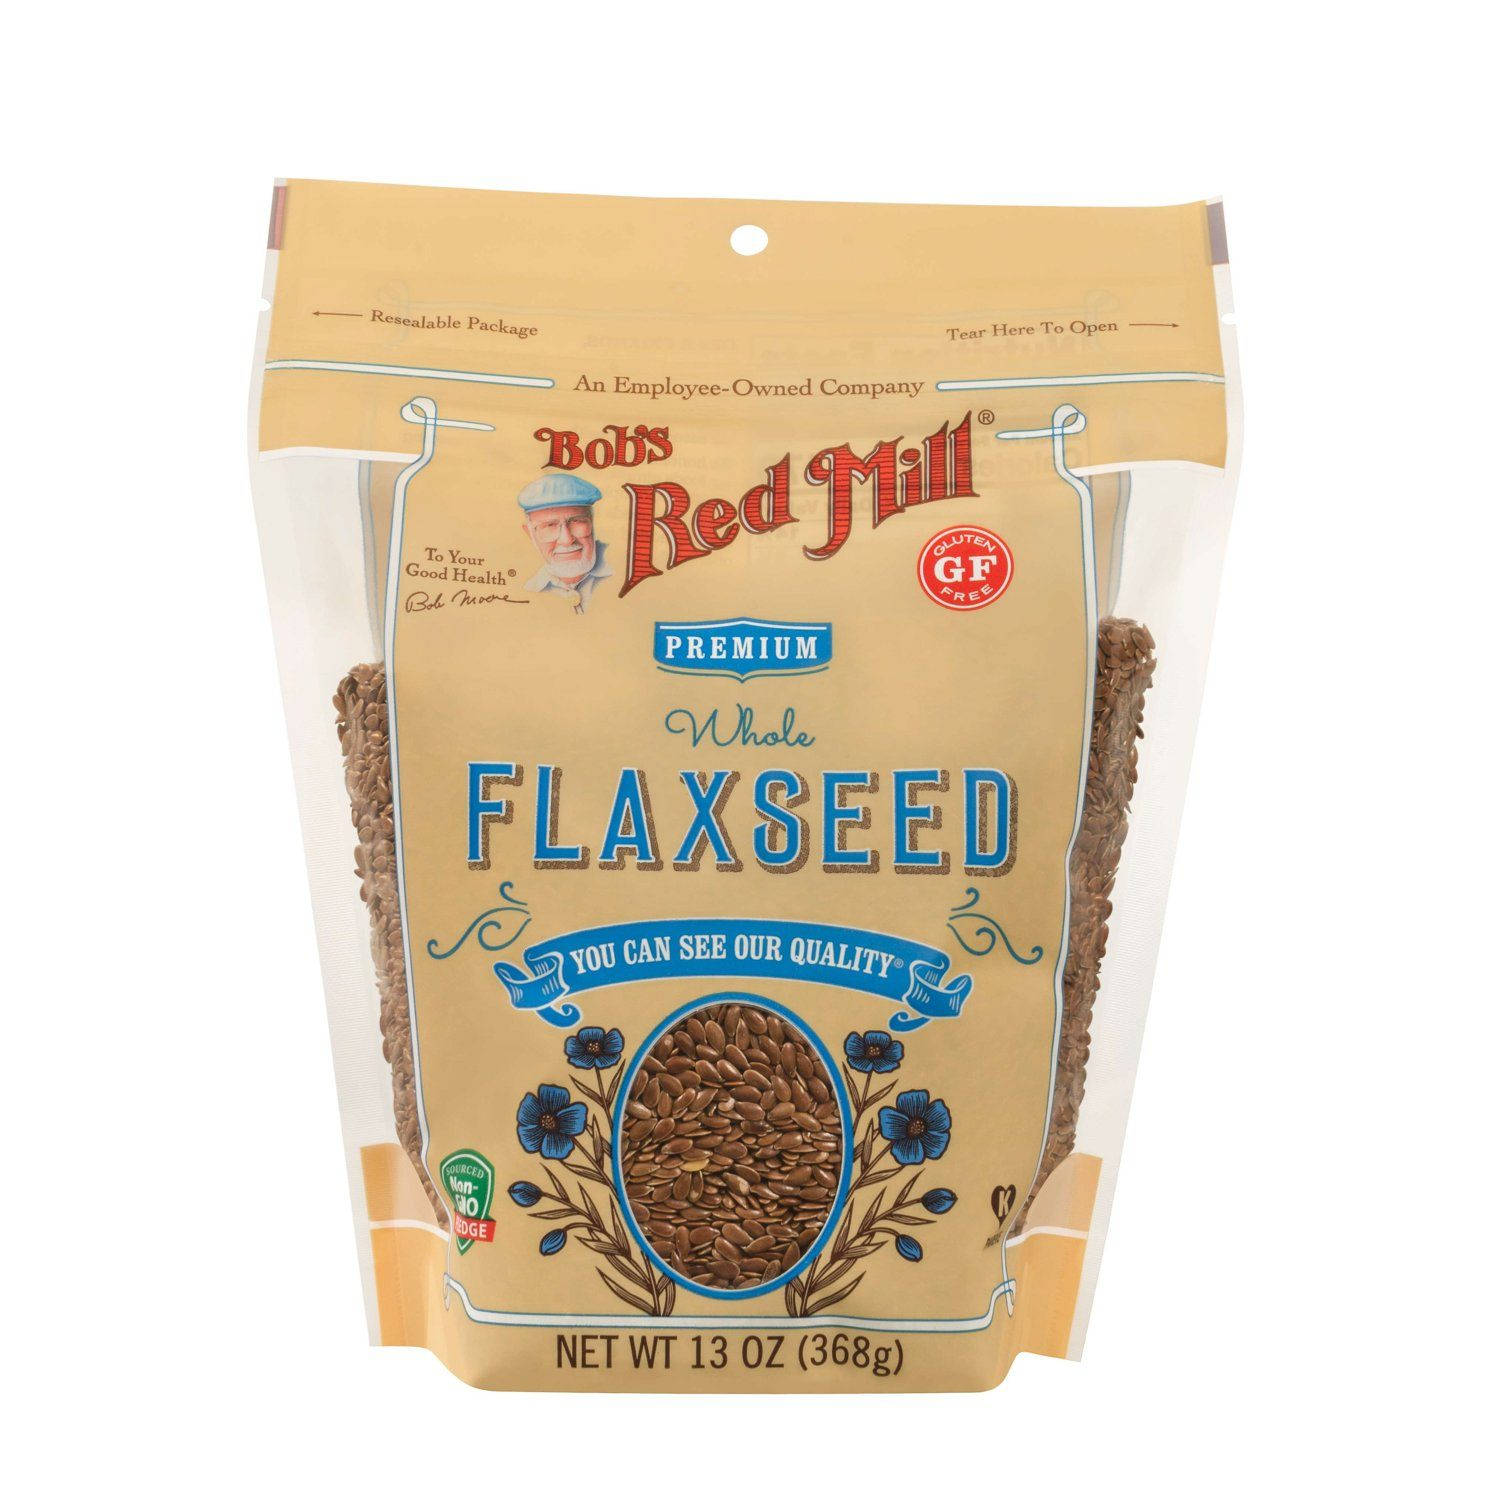 Bob's Red Mill Flaxseed Bob's Red Mill Brown 13 Ounce